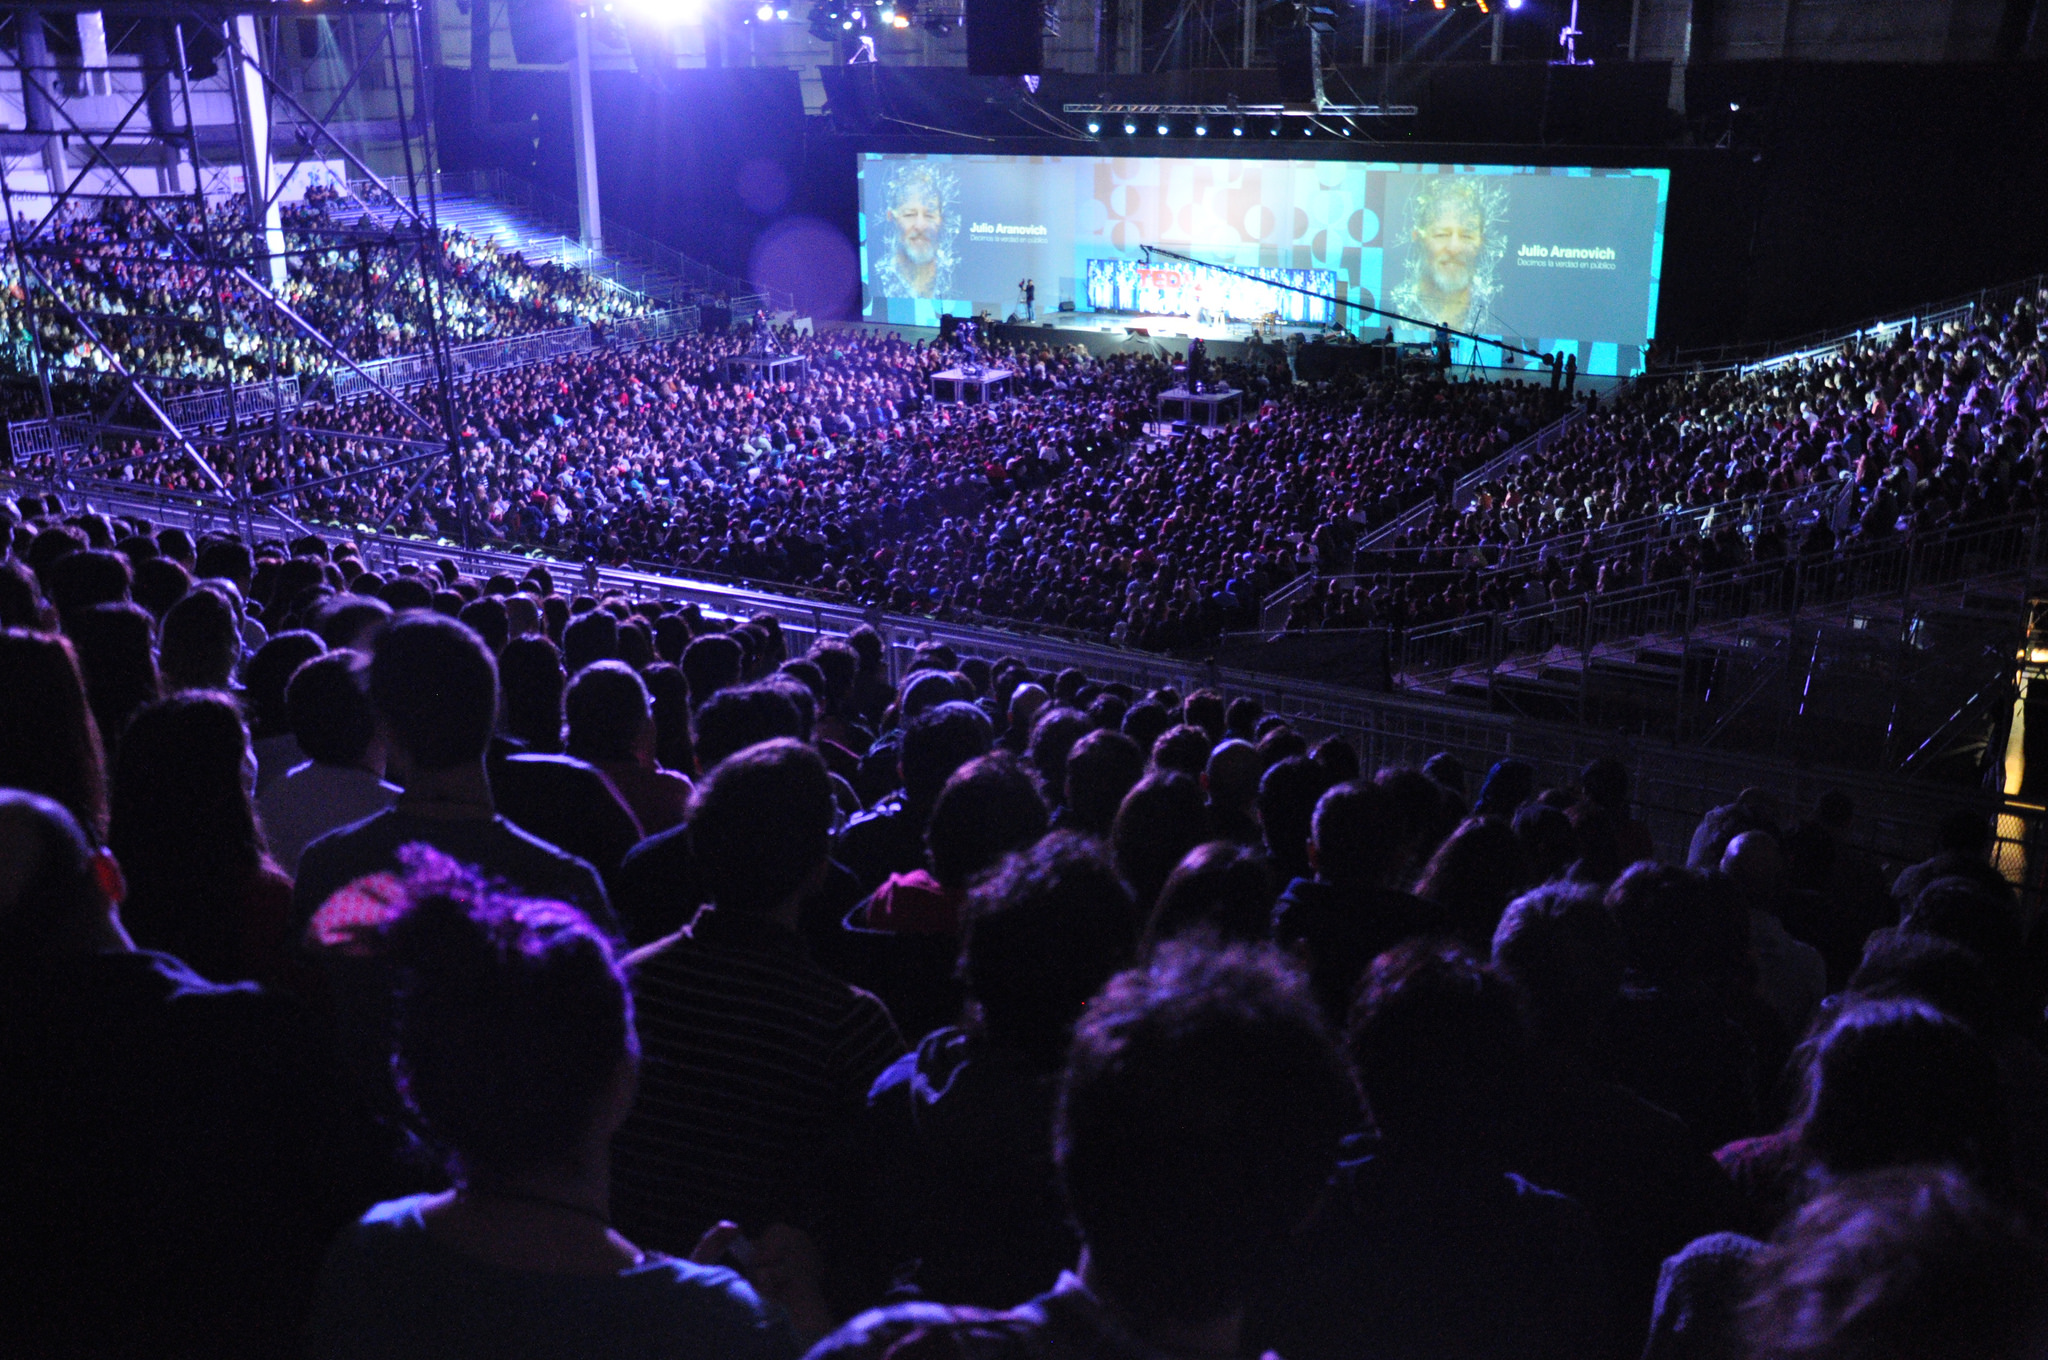 The incredibly large audience at TEDxRio